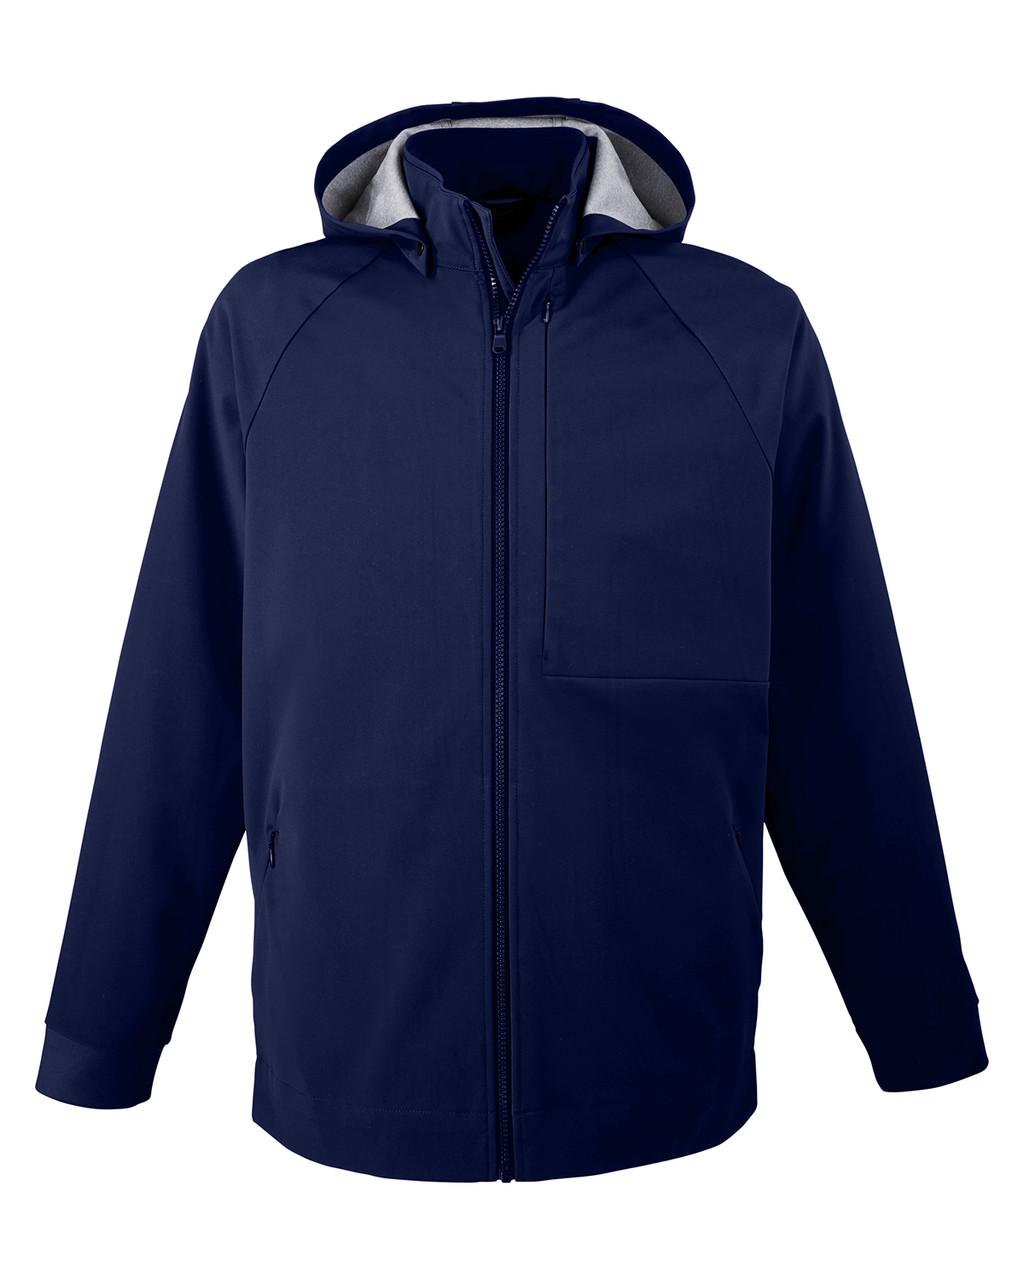 Classic Navy - NE718 North End Men's City Hybrid Shell Jacket| BlankClothing.ca